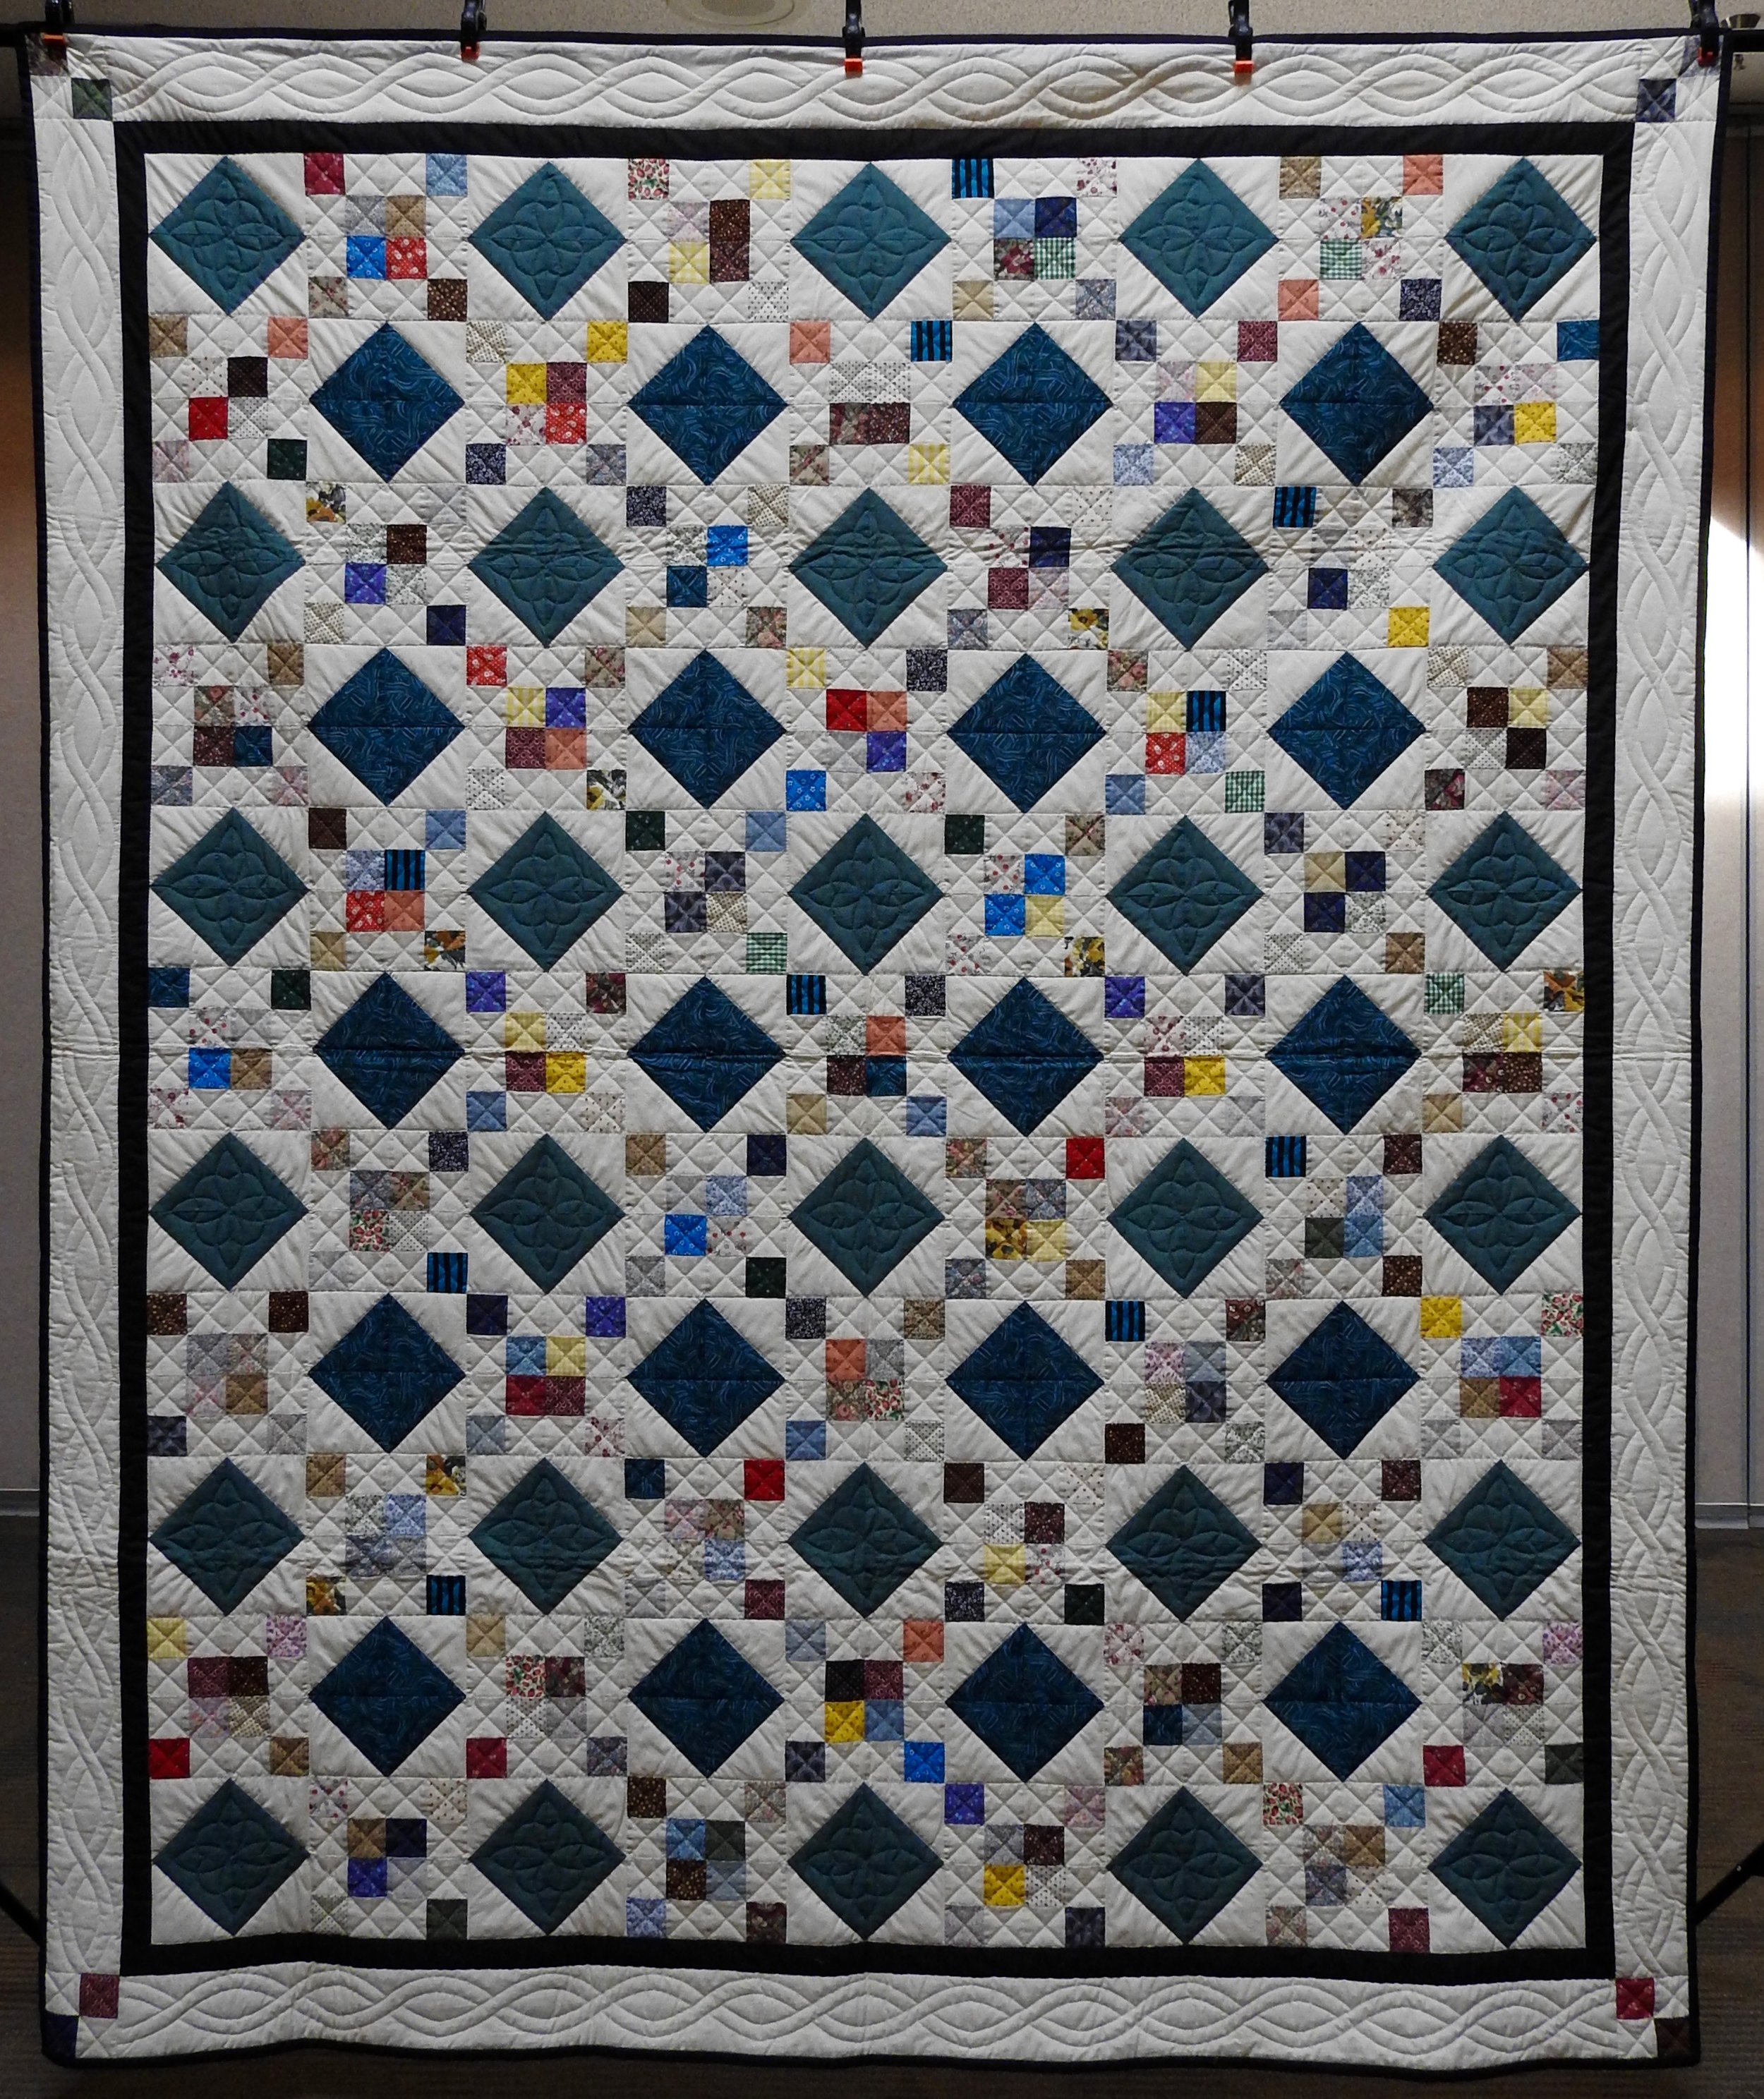 Jewel Box, Pieced & Hand Quilted by Isabel Leipprandt, Signed & Dated, donated by Wayne & Karen Moss, 82 x 99""